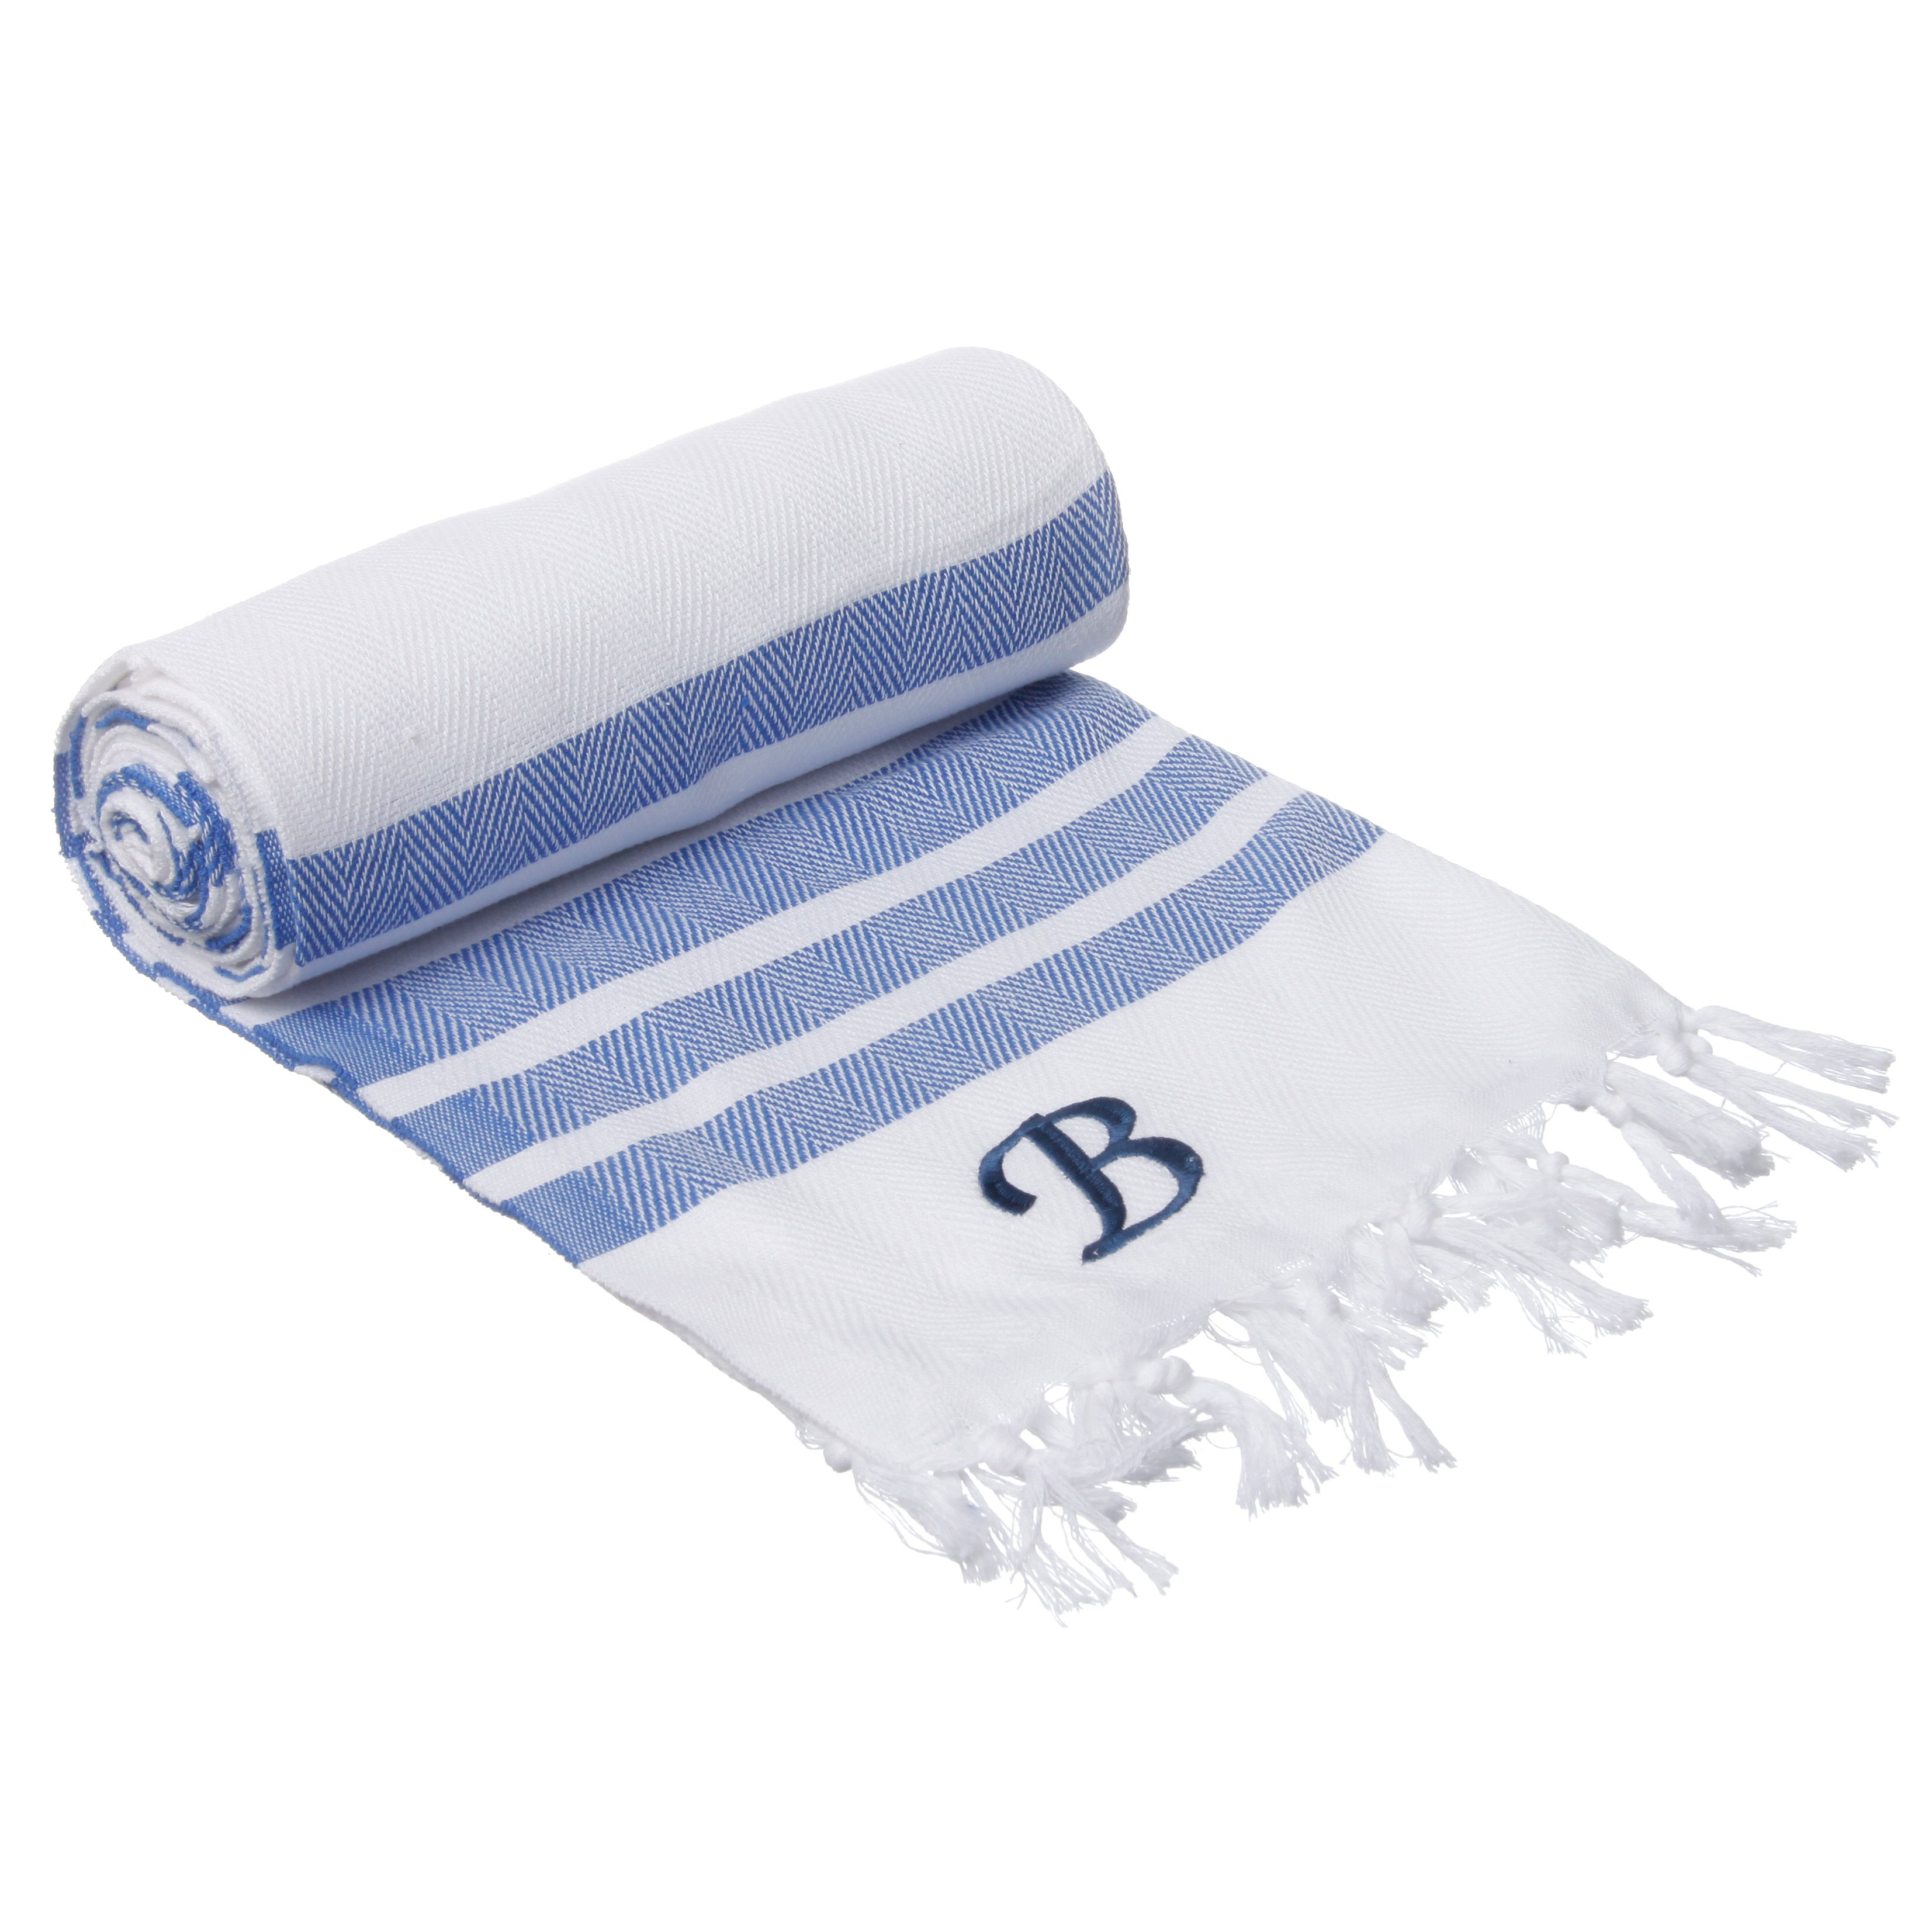 Authentic Royal Blue Bold Stripe Fouta Turkish Cotton Towel with Monogram Initial at Sears.com